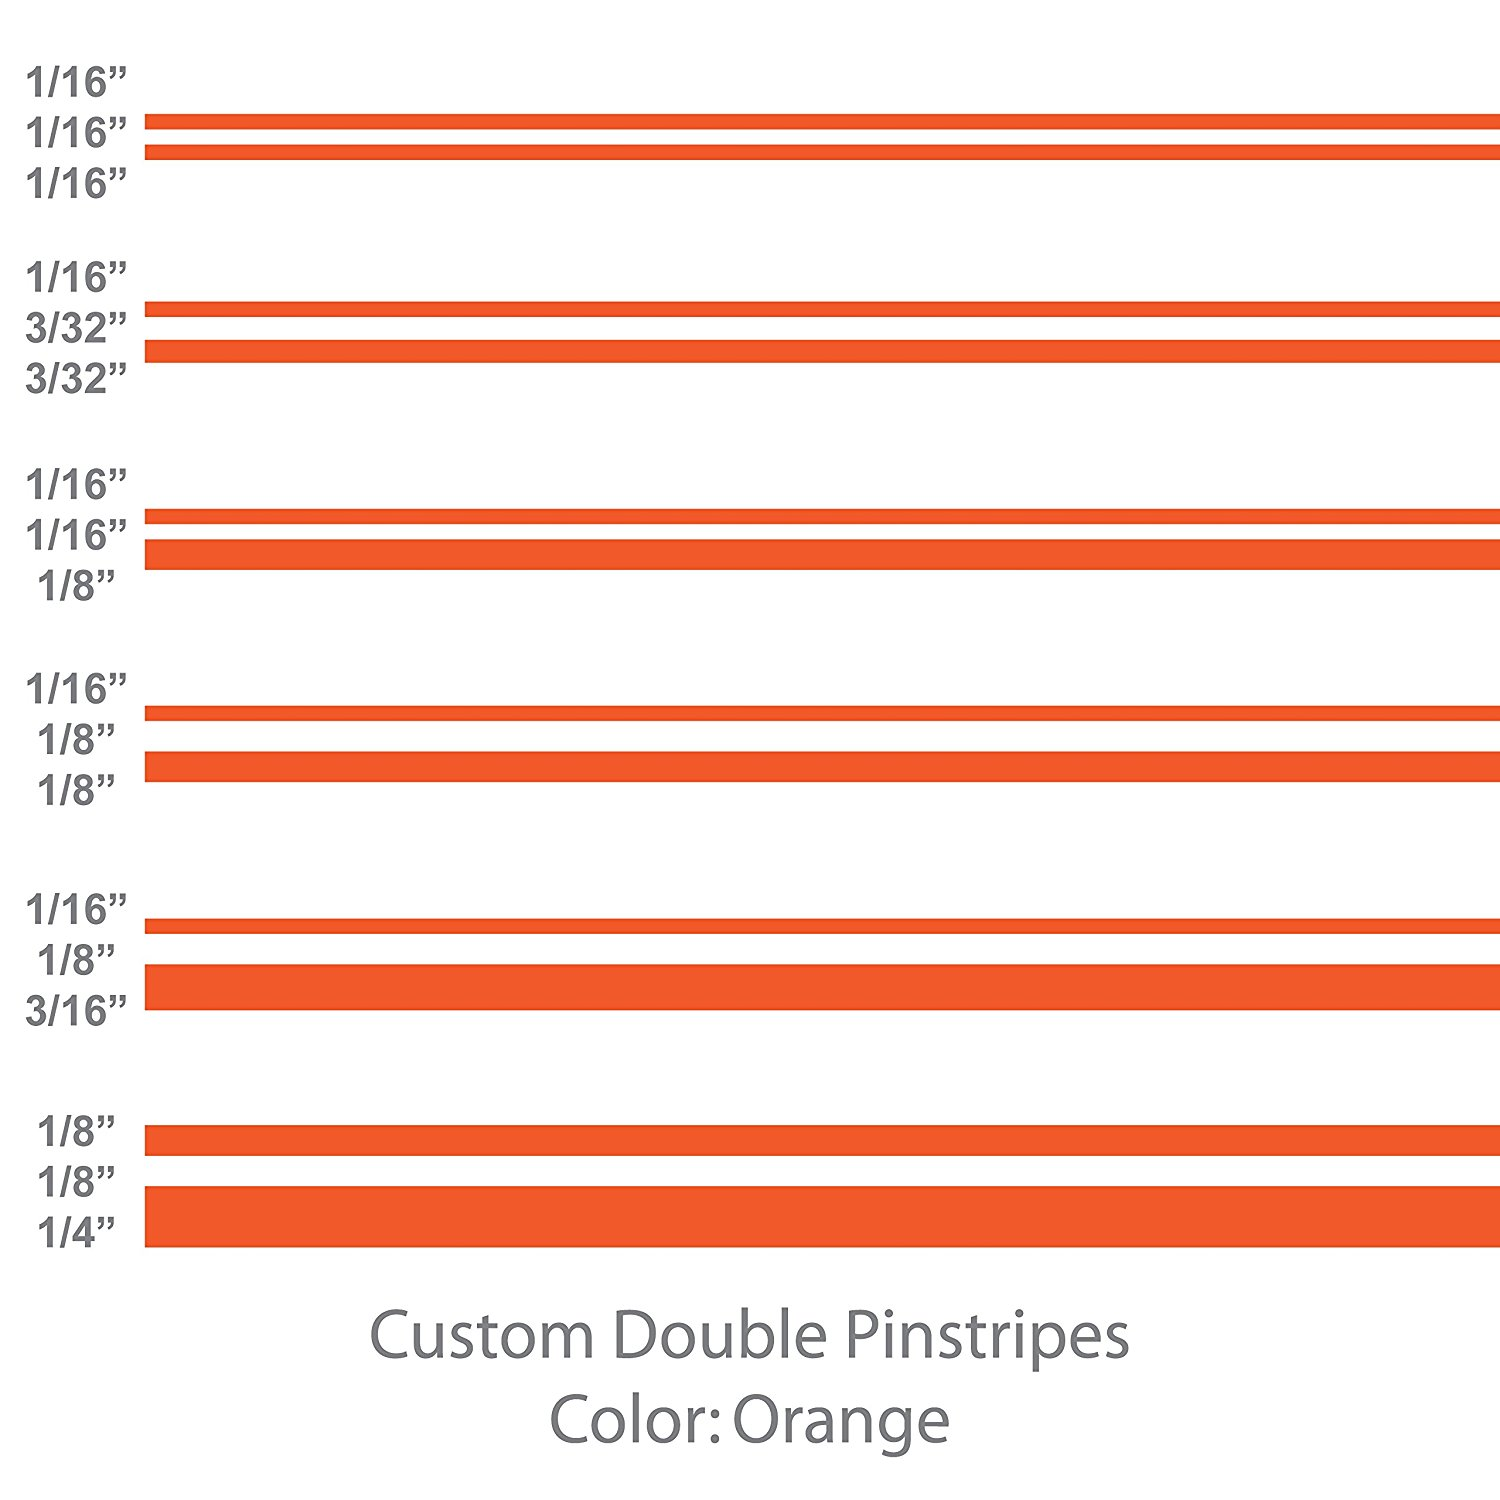 """Double Pinstripes (Orange) 1/8"""" 1/16"""" 3/16"""" 3/32"""" 5/8"""" 1/4"""" 1/2"""" 3/4"""" inch widths / auto car truck pinstriping vinyl tape decal / by 1060 Graphics. (1/8"""" - 1/8"""" - 1/4"""" (12' ft. length))"""